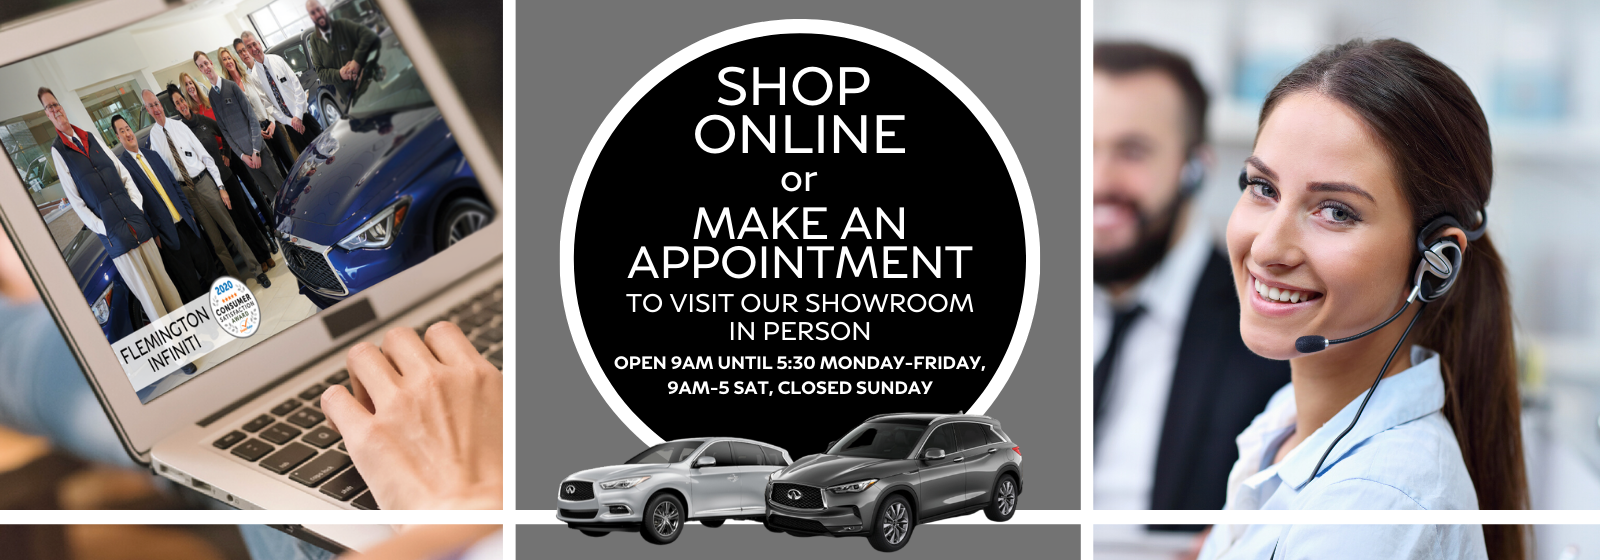 Shop Online or Make and Appointment in Person